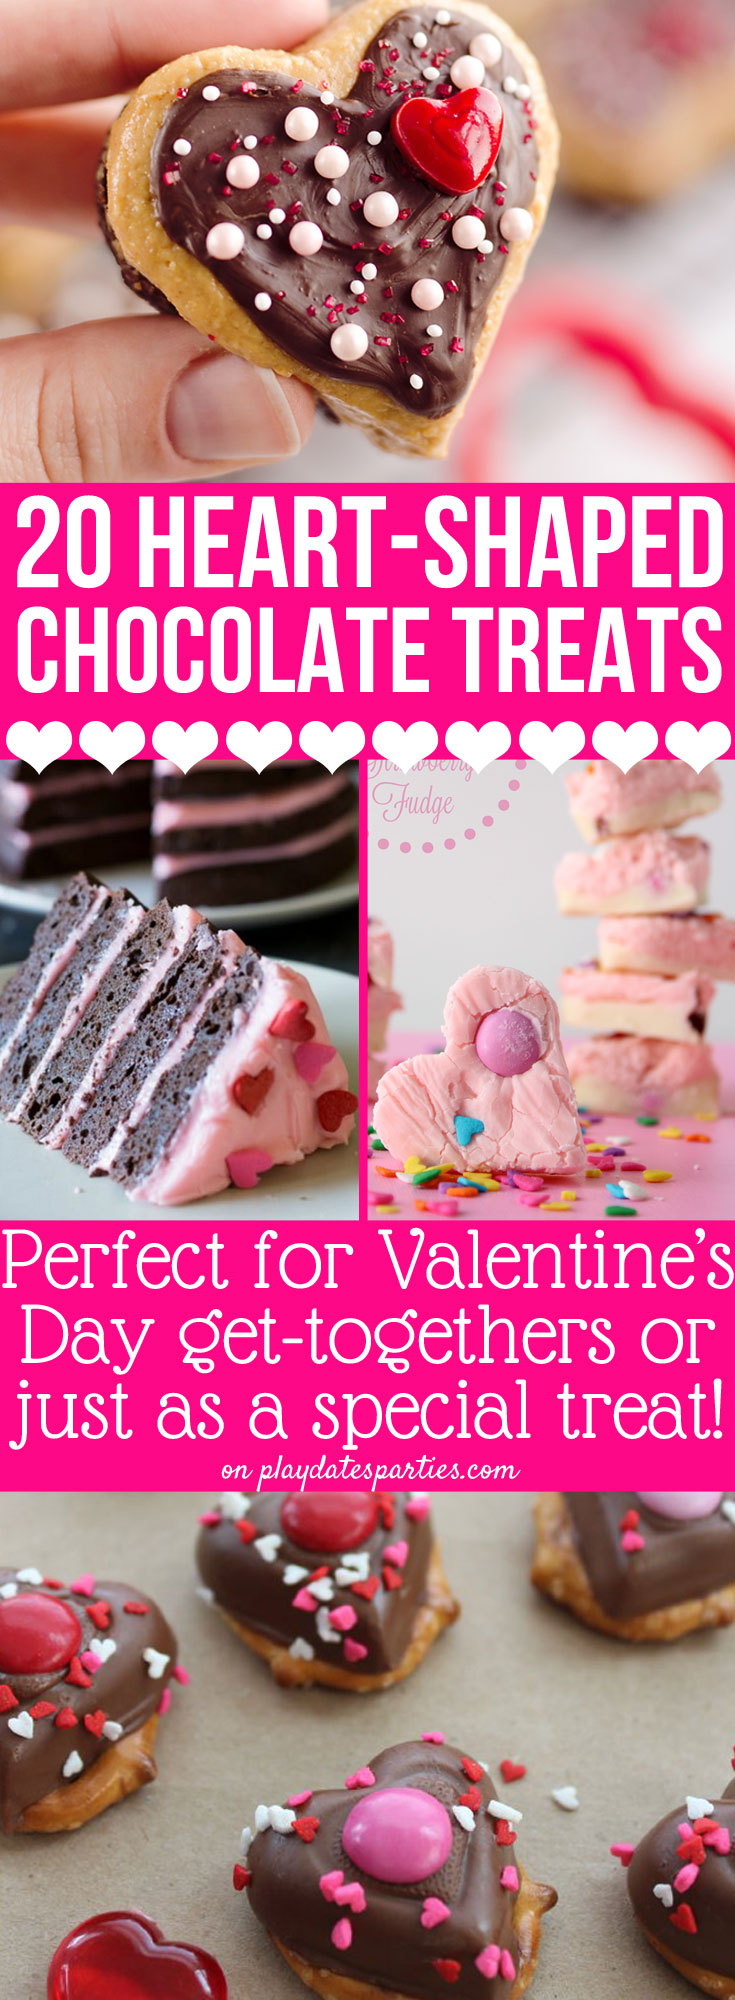 These 20 heart shaped chocolates treats are just the CUTEST way to celebrate Valentine's Day this year with your kids or your loved ones. The hardest part may be choosing just one! #valentinesday #recipes #chocolate #desserts